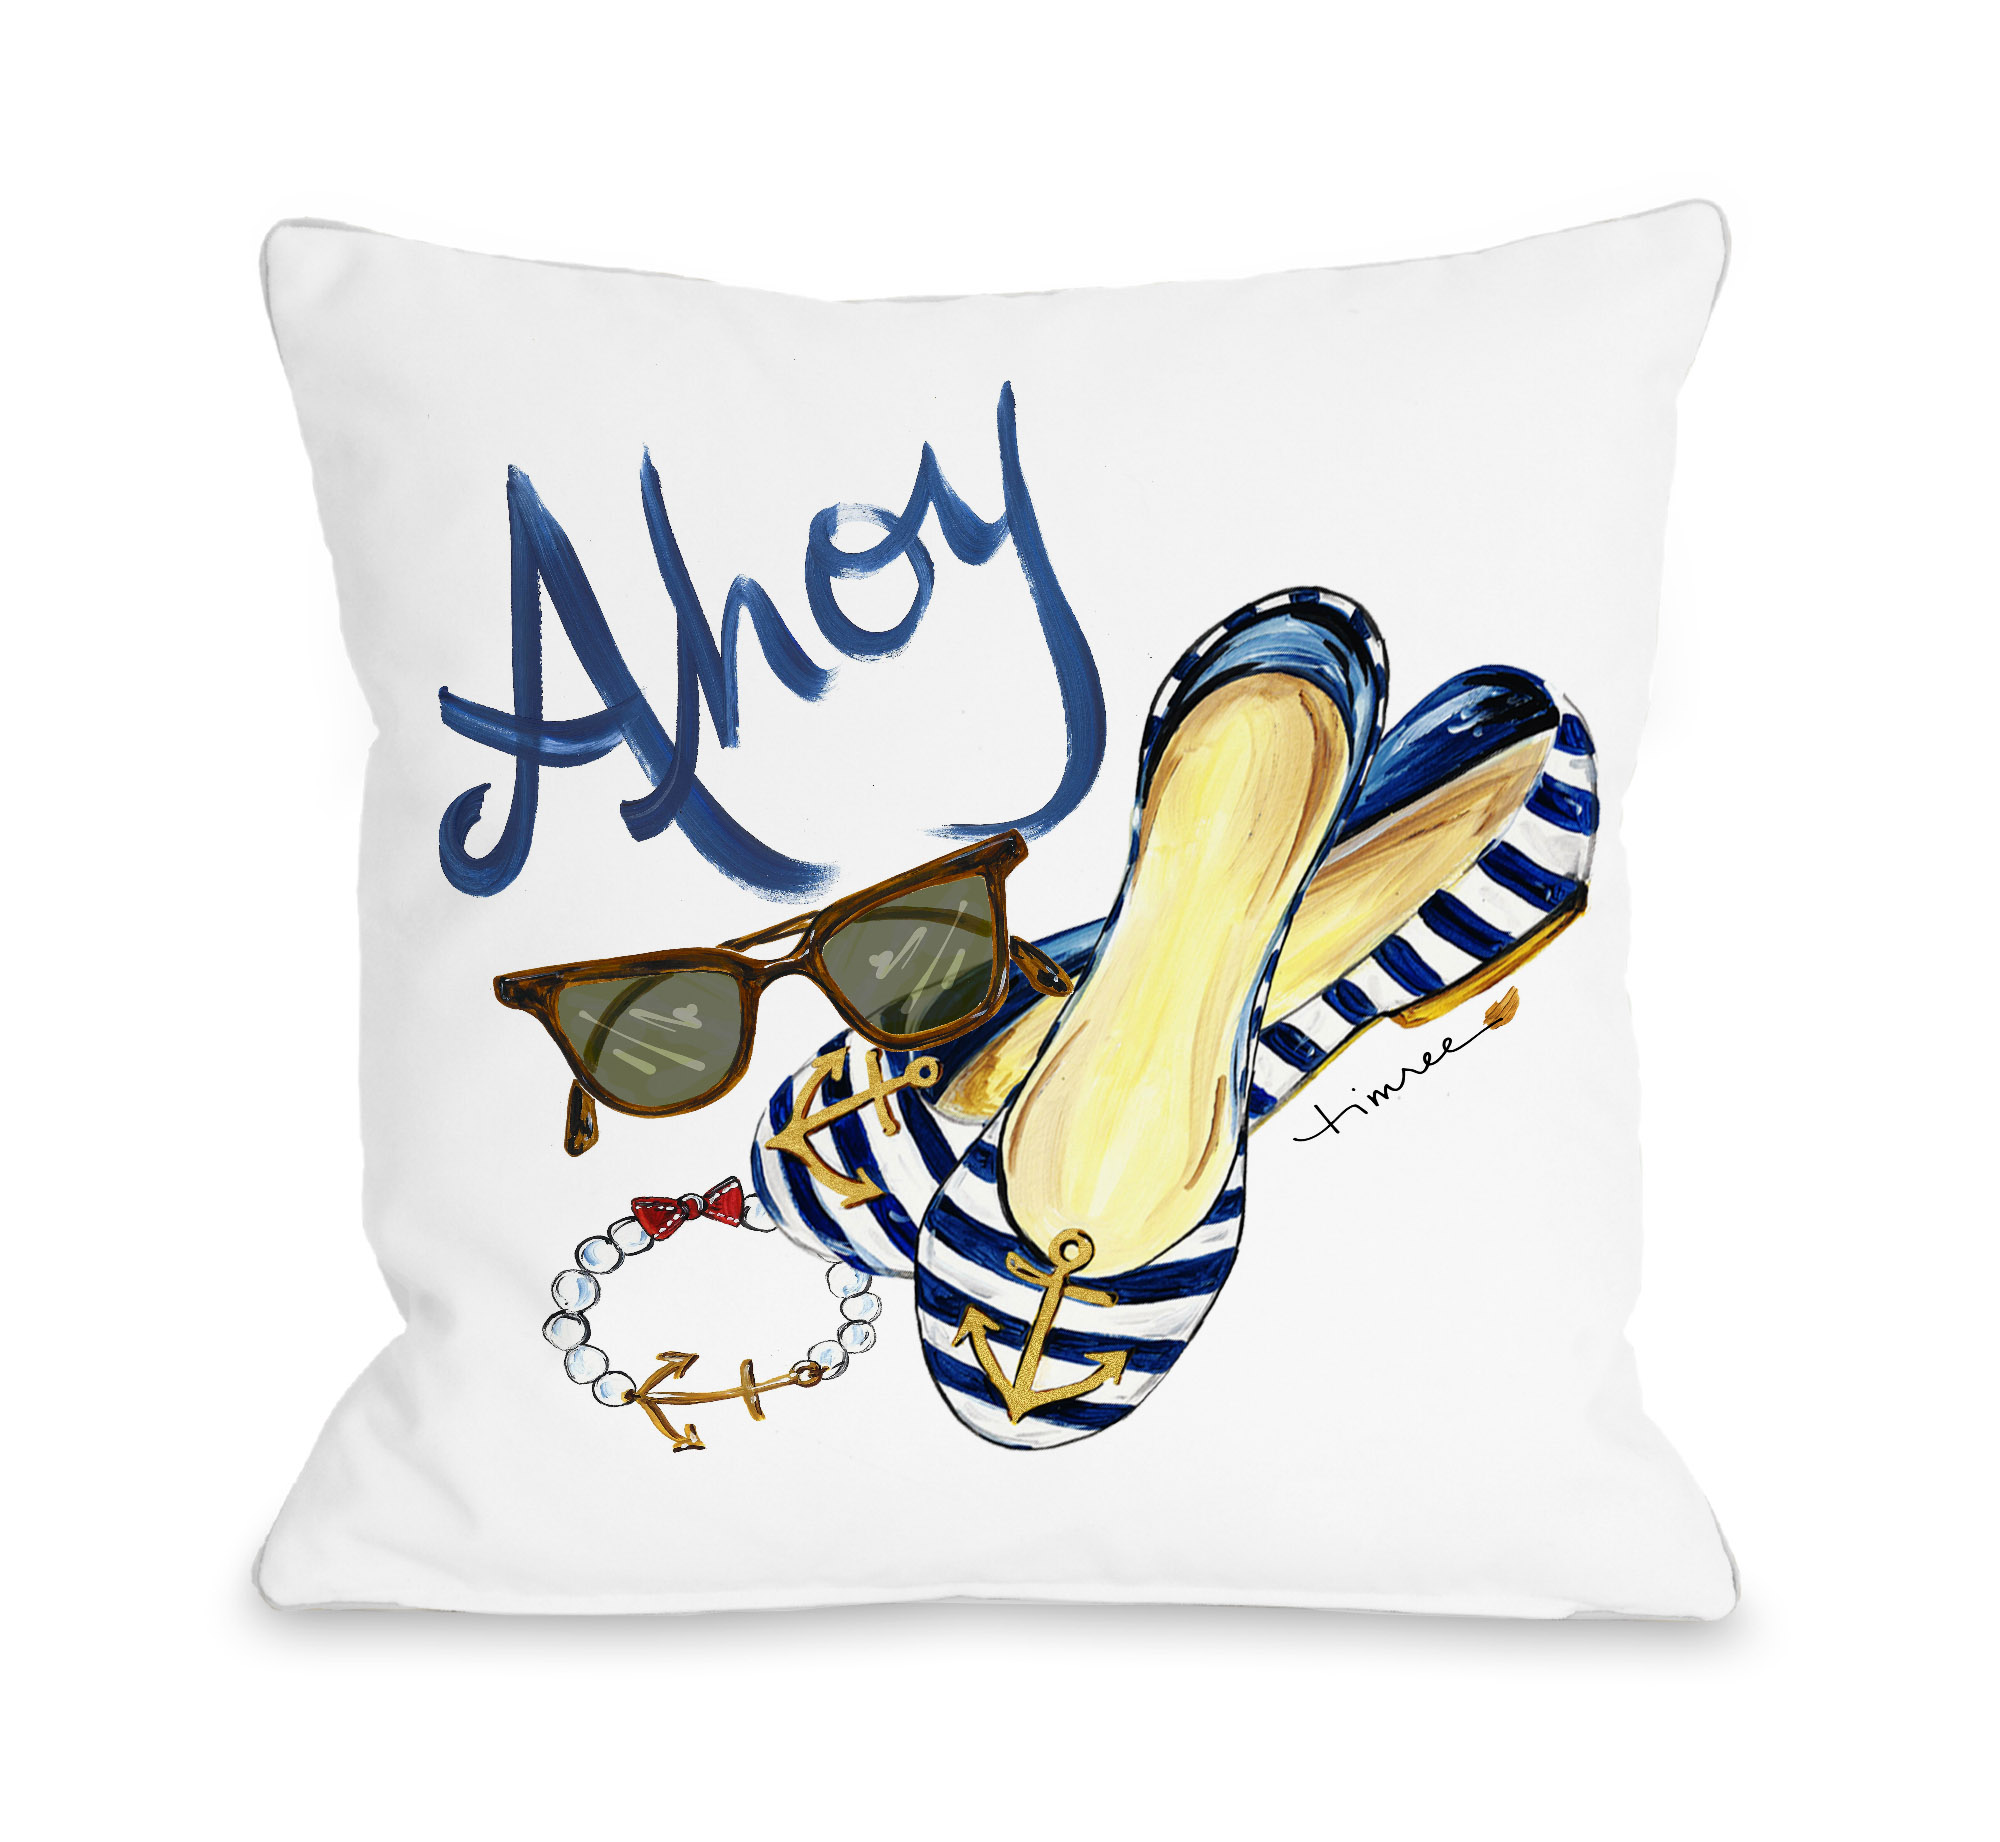 Ahoy Shoes - Multi 16x16 Pillow by Timree